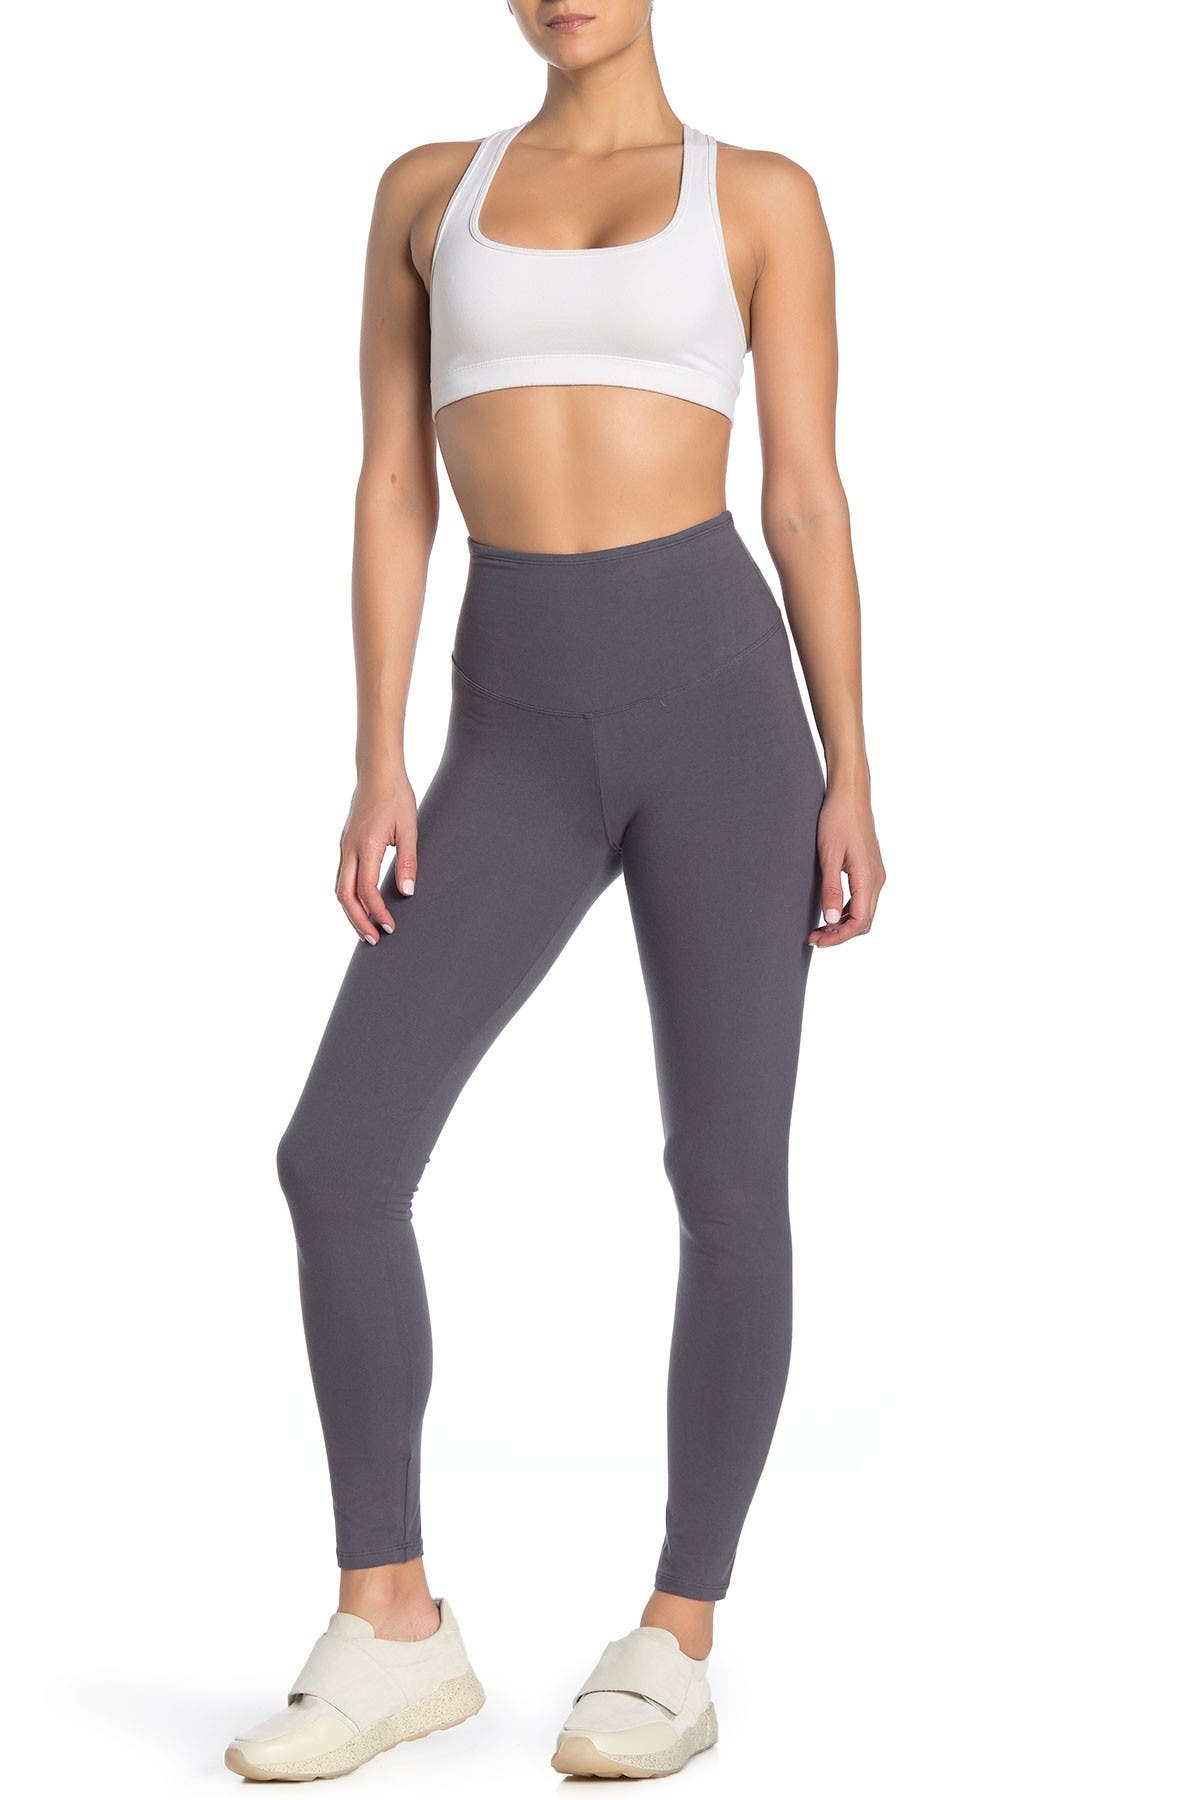 Image of Yummie by Heather Thomson Compact Cotton Shaping Leggings